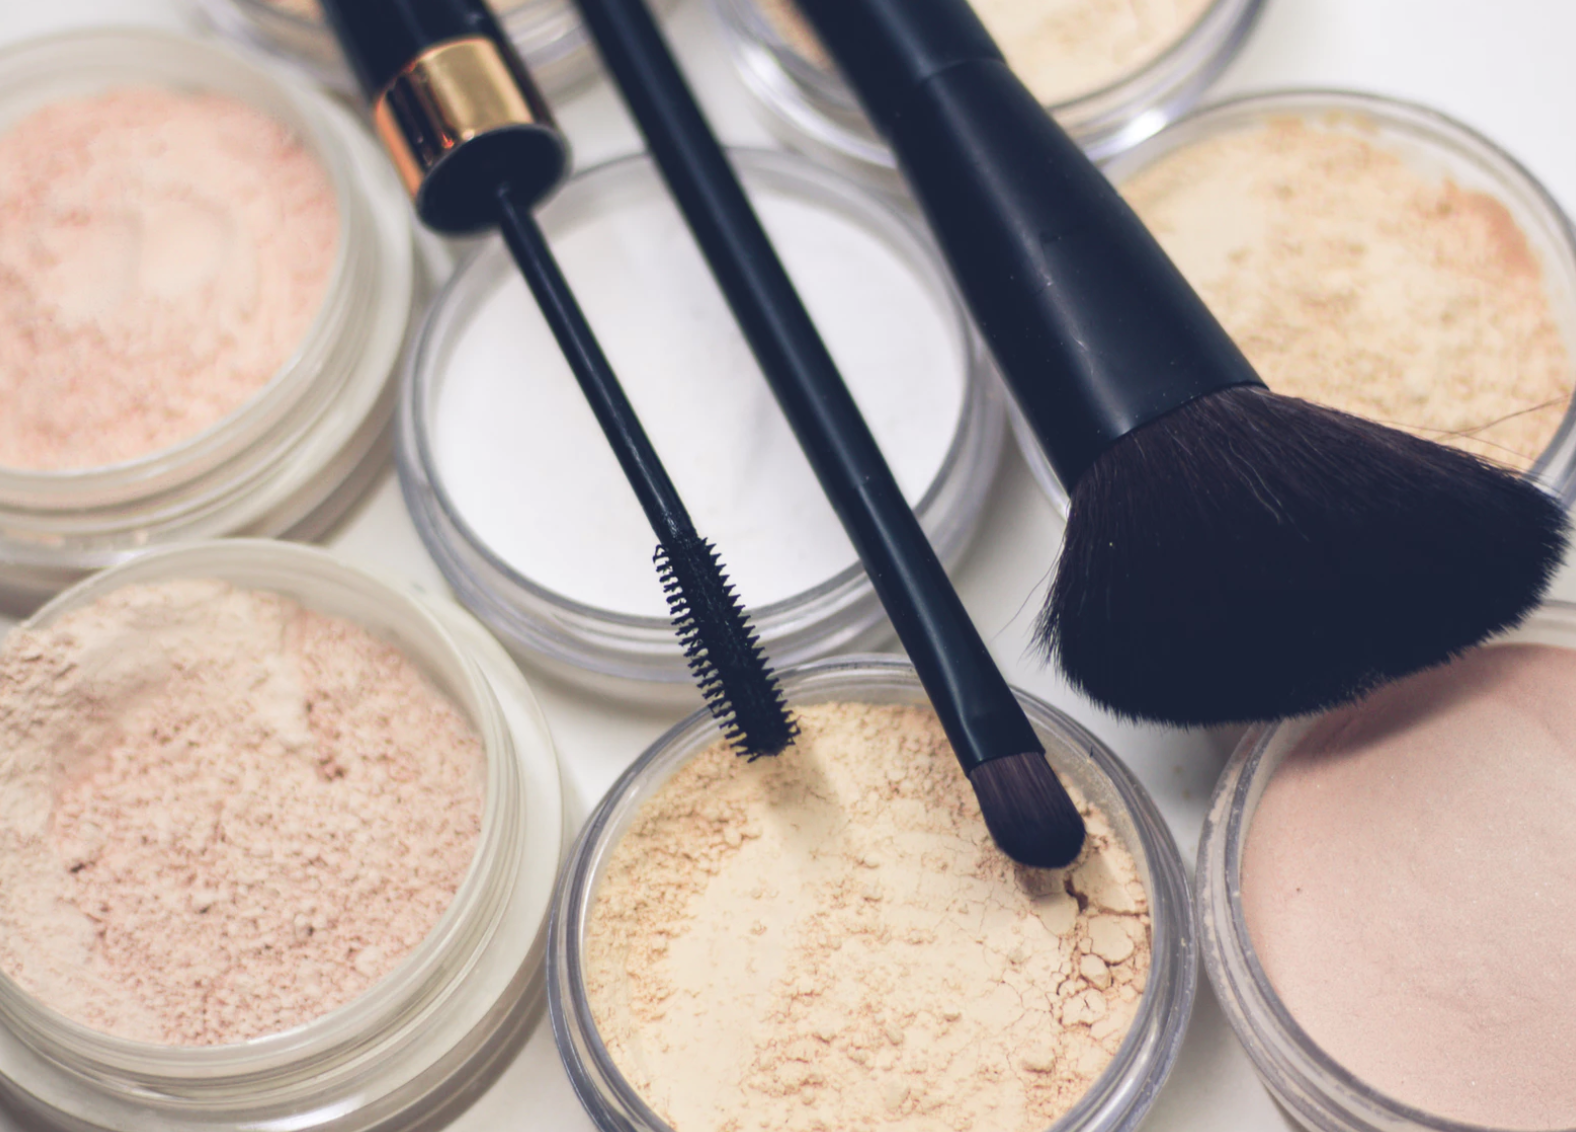 18 Makeup Essentials Every Woman Should Own in Their Dresser